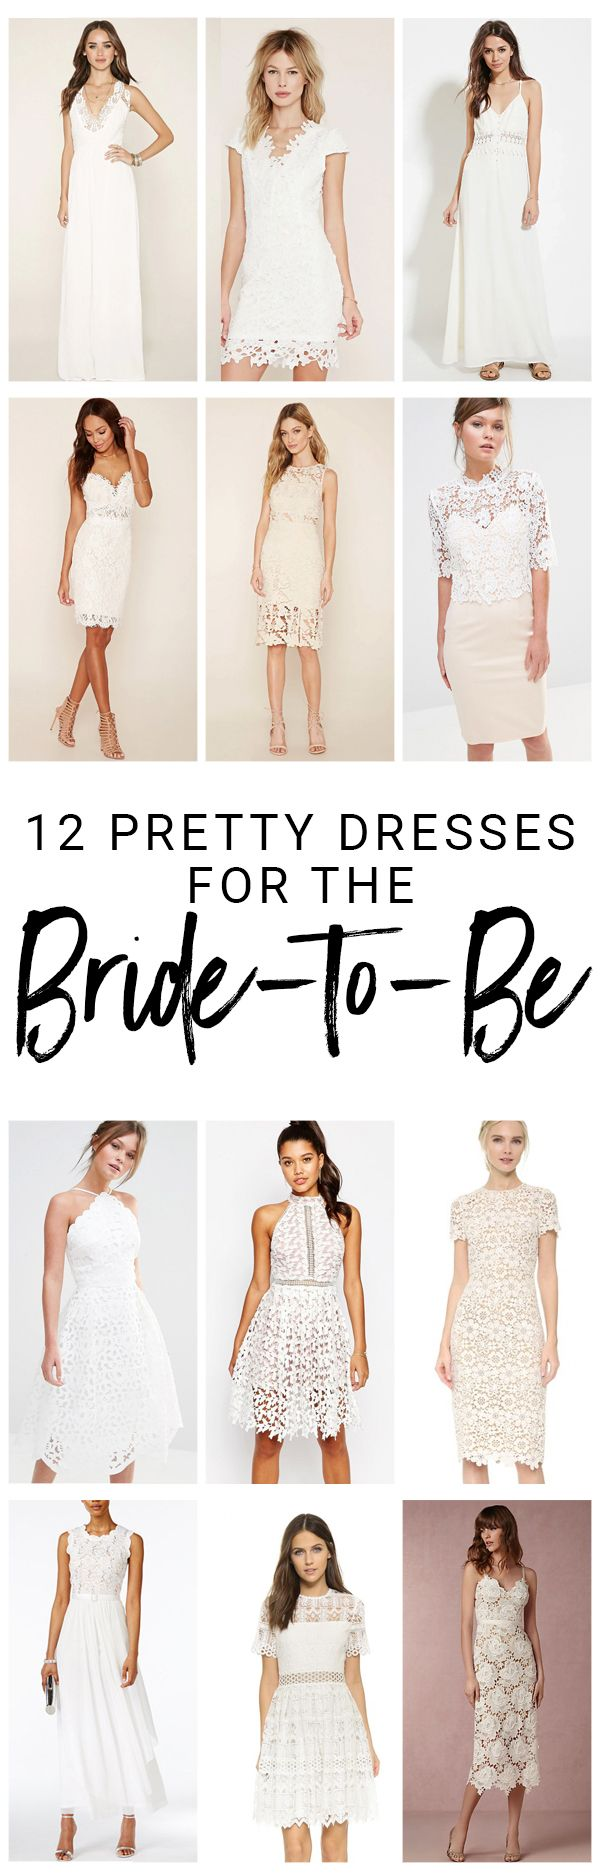 Dresses for Brides-to-Be - Thyme Is Honey